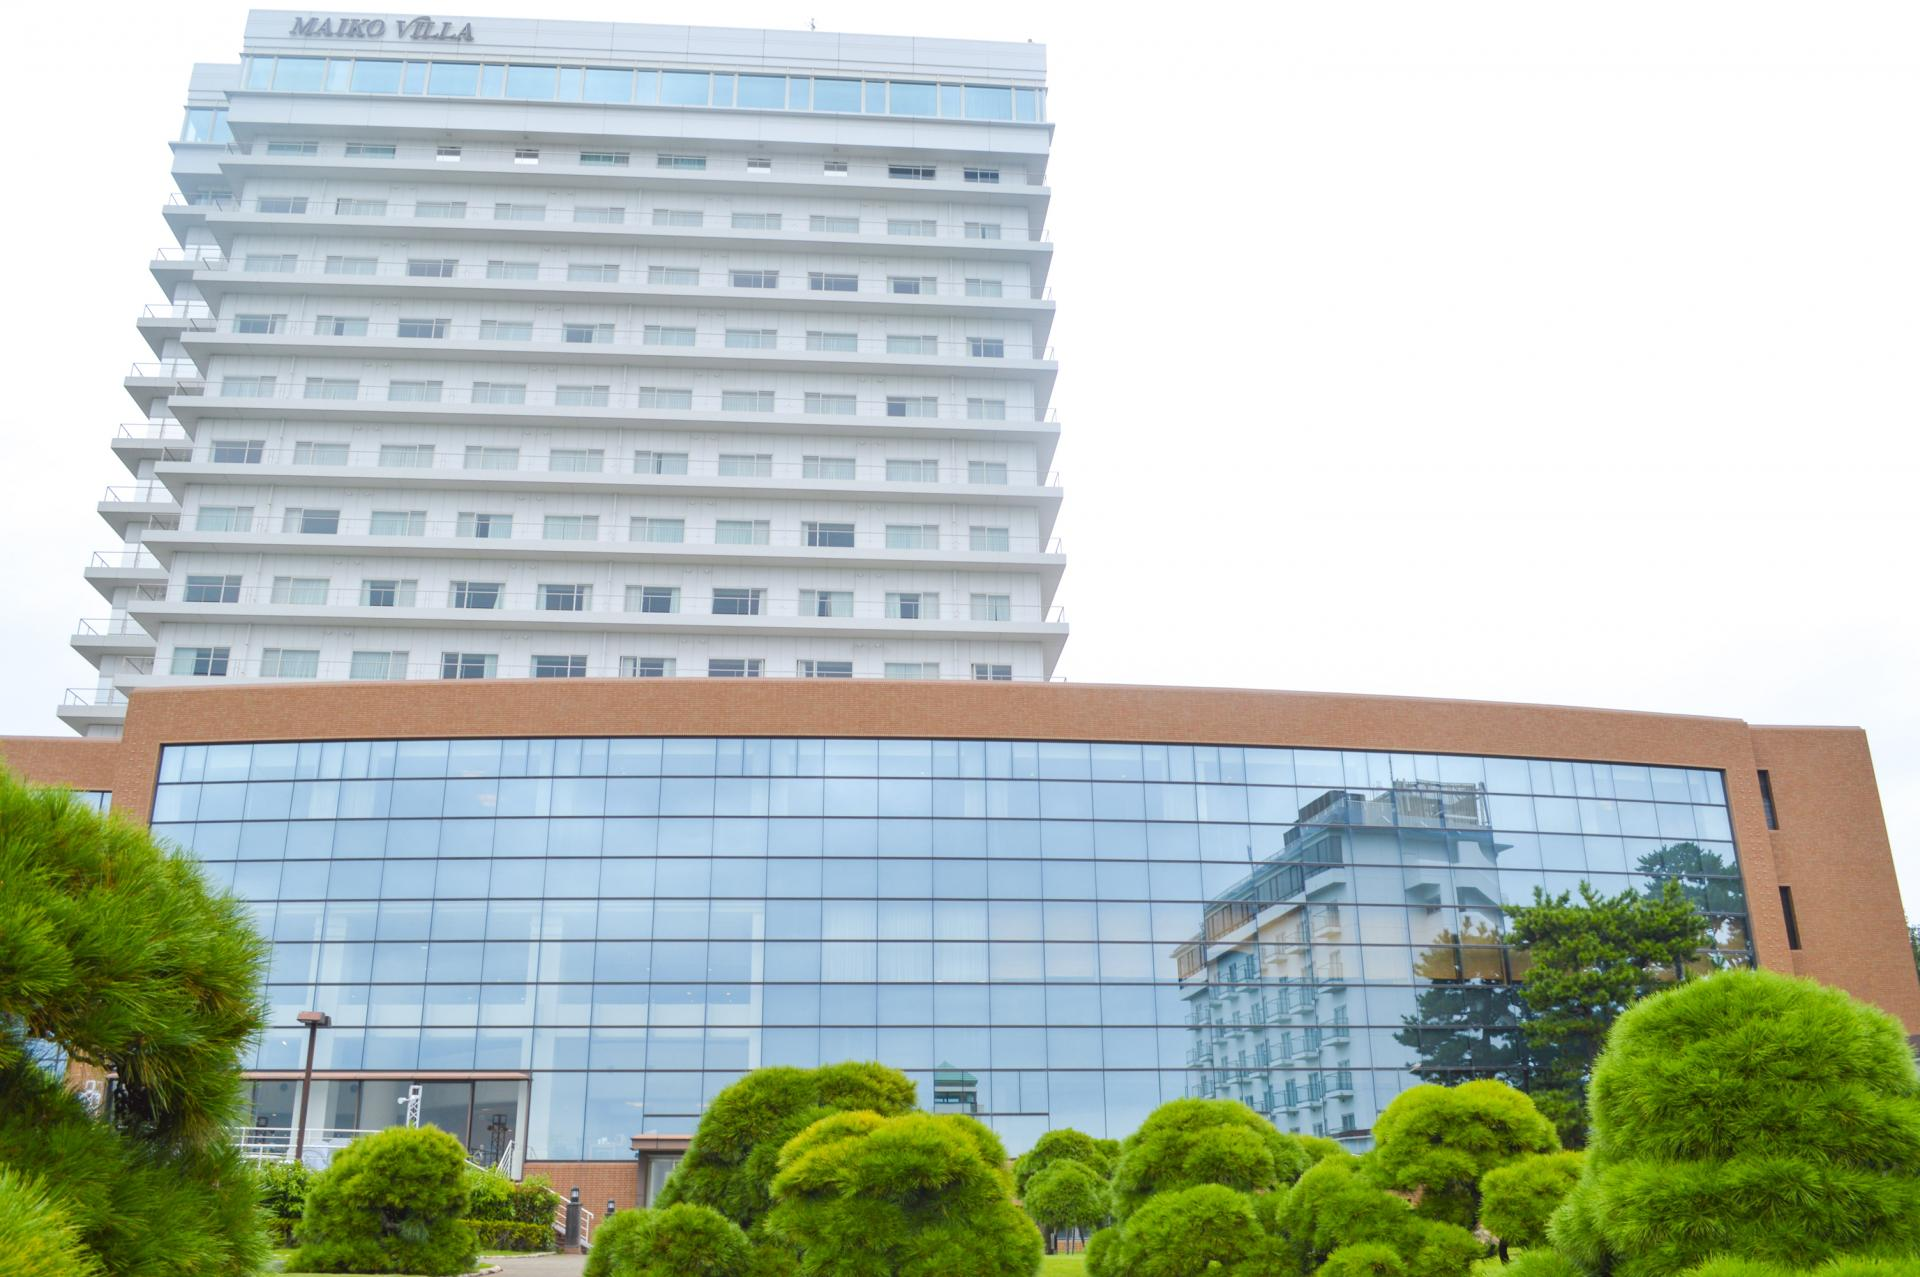 Seaside Hotel Maiko Villa Review My Suitcase Journeys